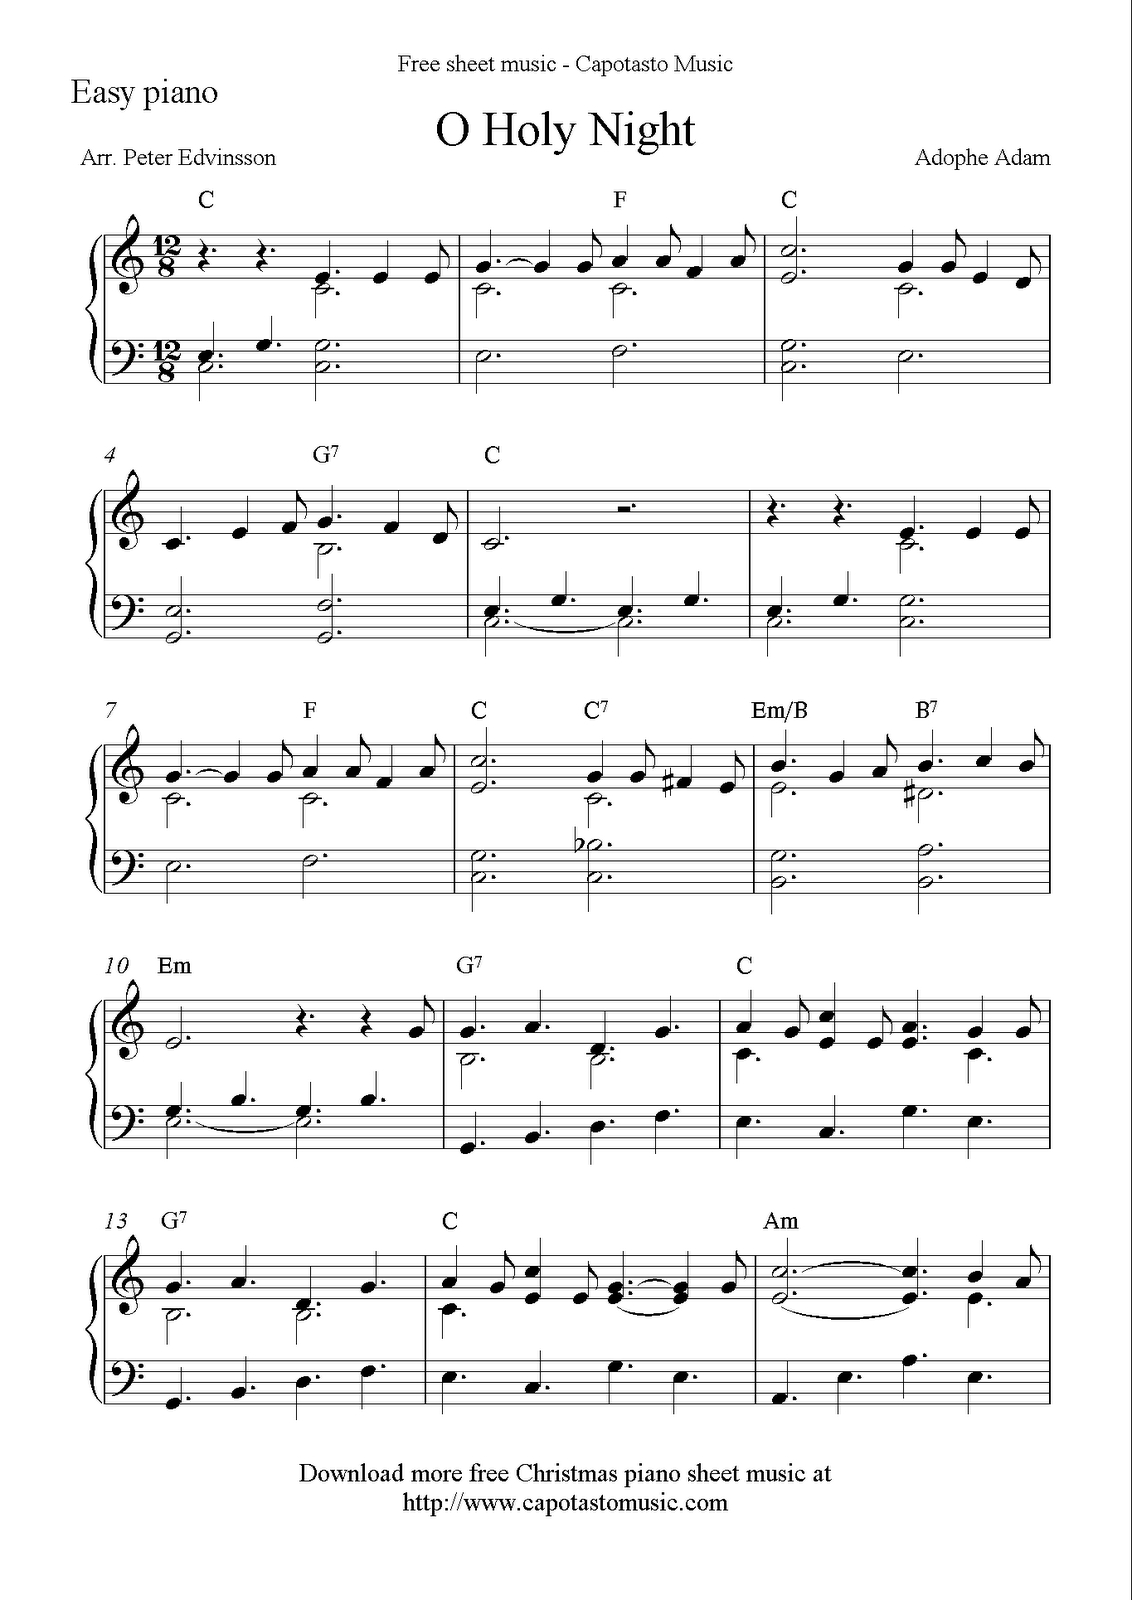 Easy Piano Solo Arrangementpeter Edvinsson Of The Christmas - Free Printable Sheet Music For Piano Beginners Popular Songs